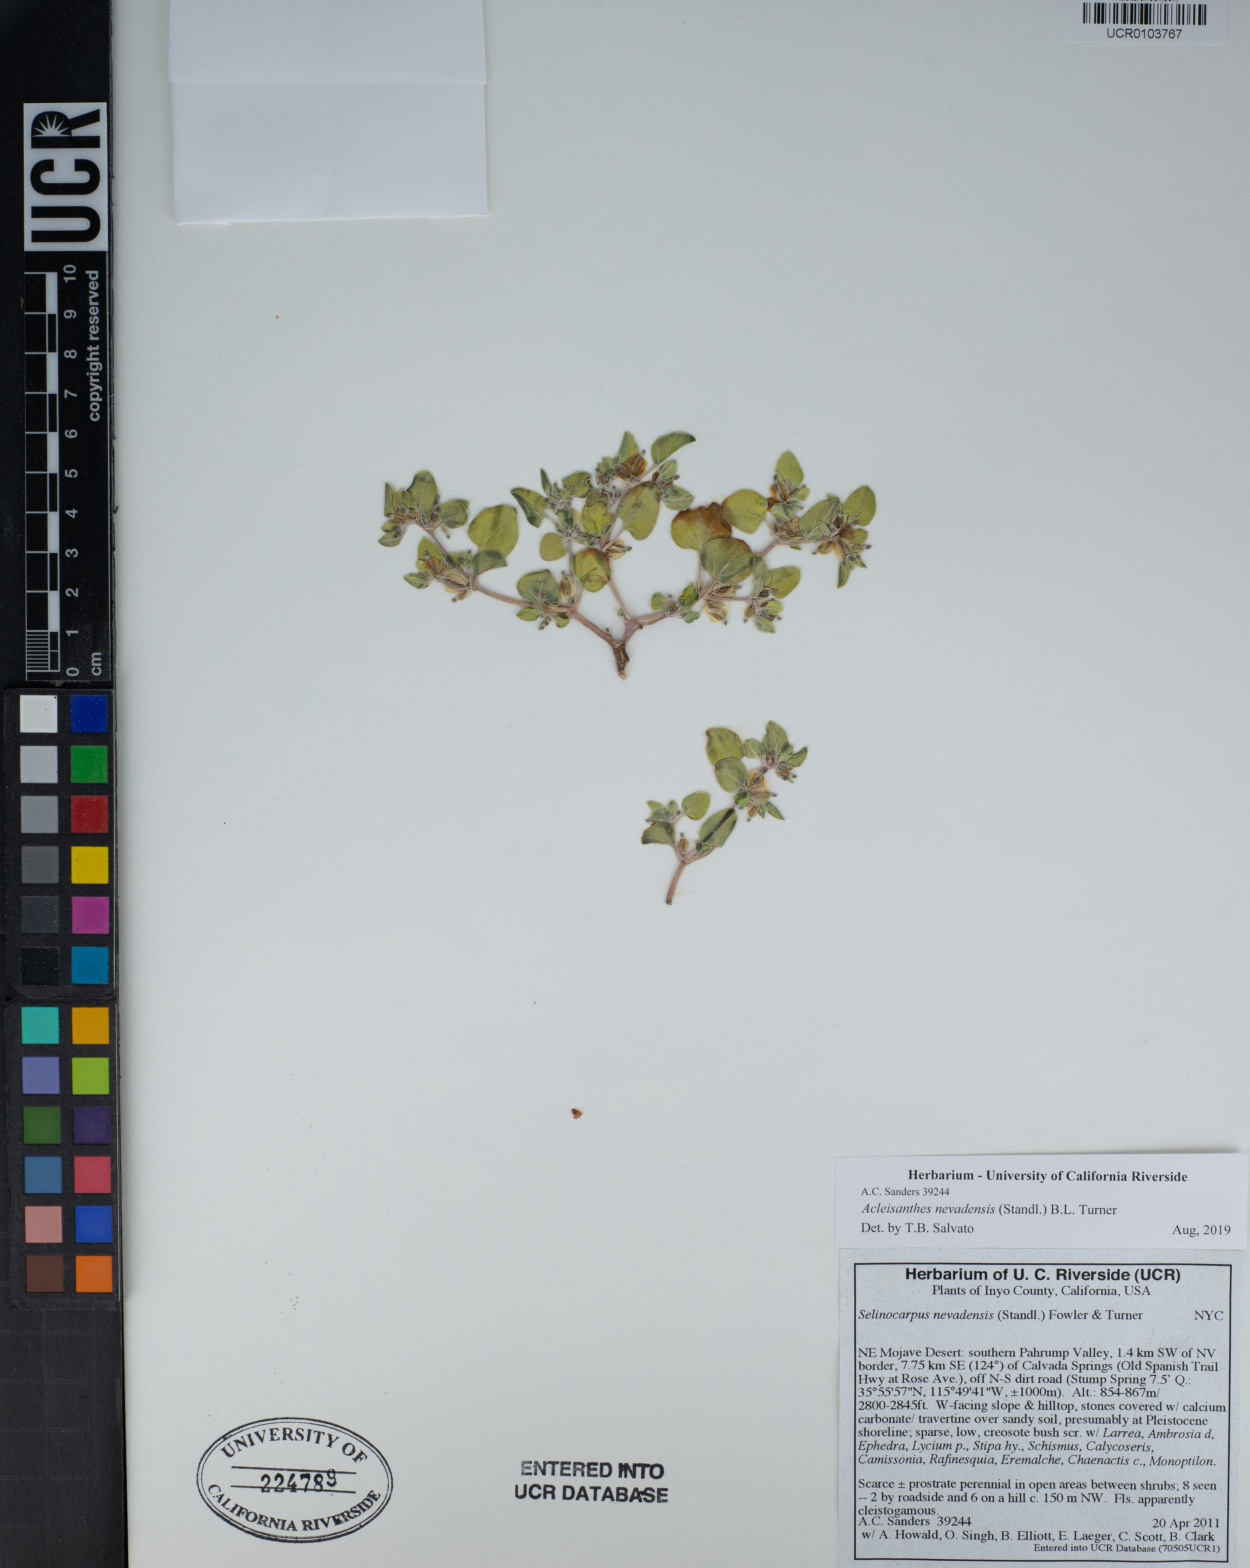 Acleisanthes nevadensis image